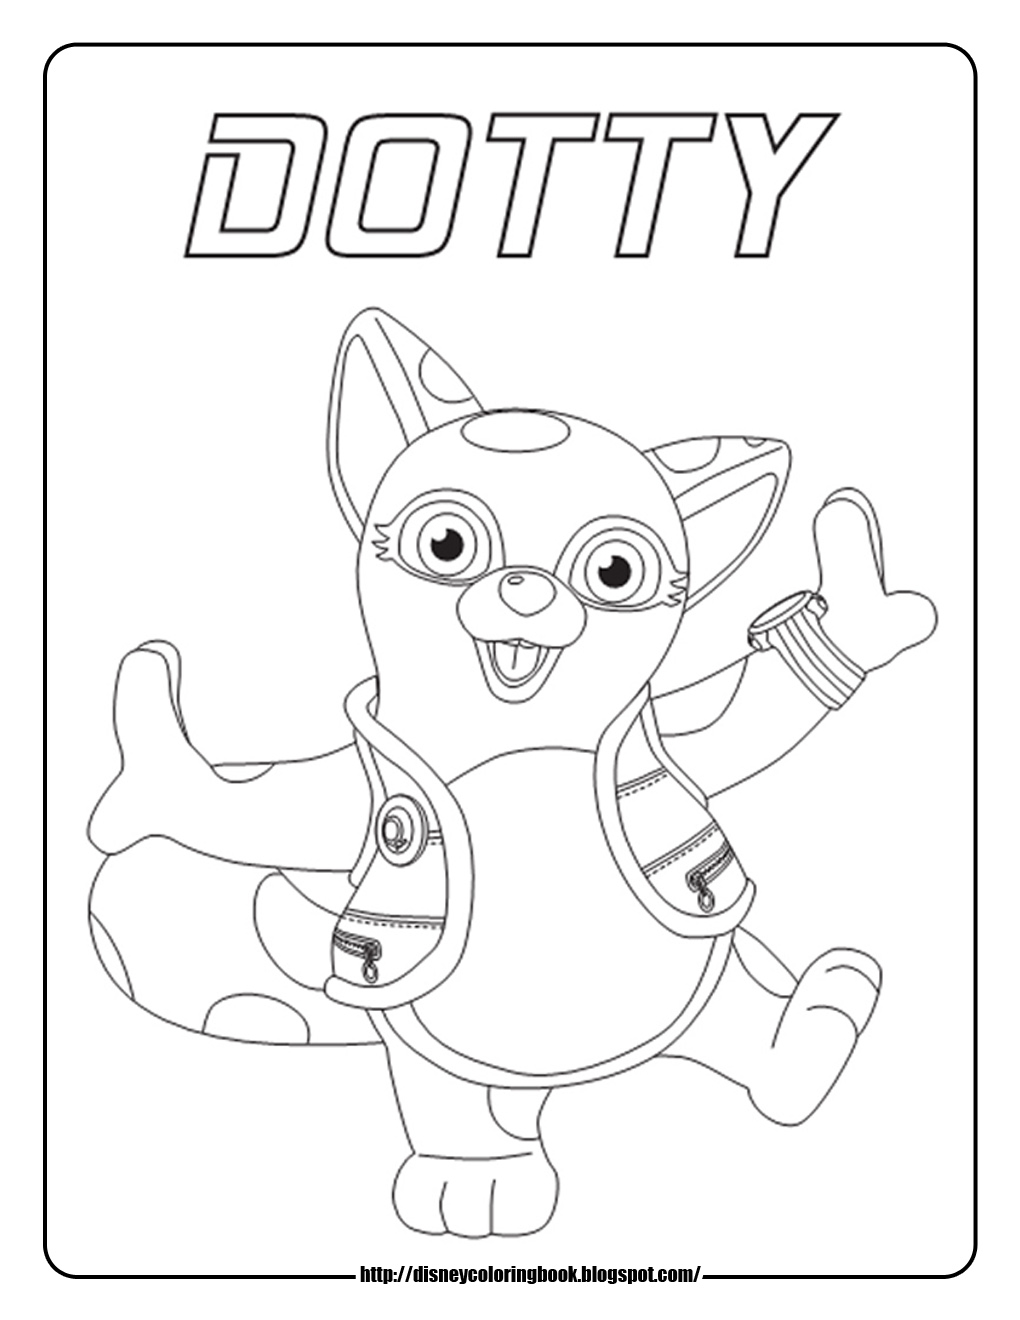 Special coloring pages ~ Special Agent Oso 1: Free Disney Coloring Sheets | Learn ...